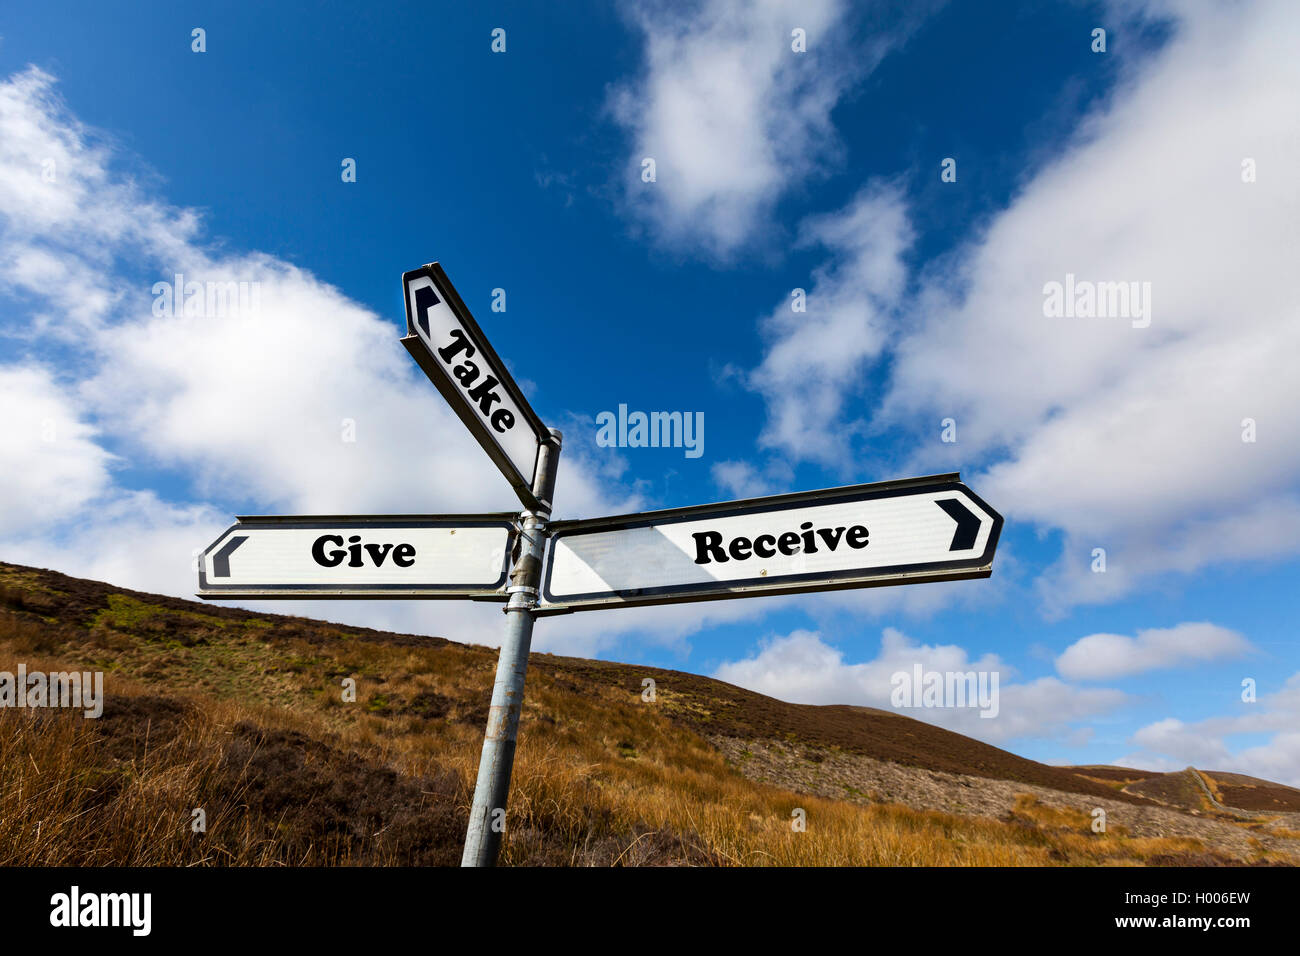 Give take receive giver taker receiver concept road sign type of person choice choose life direction future concepts - Stock Image